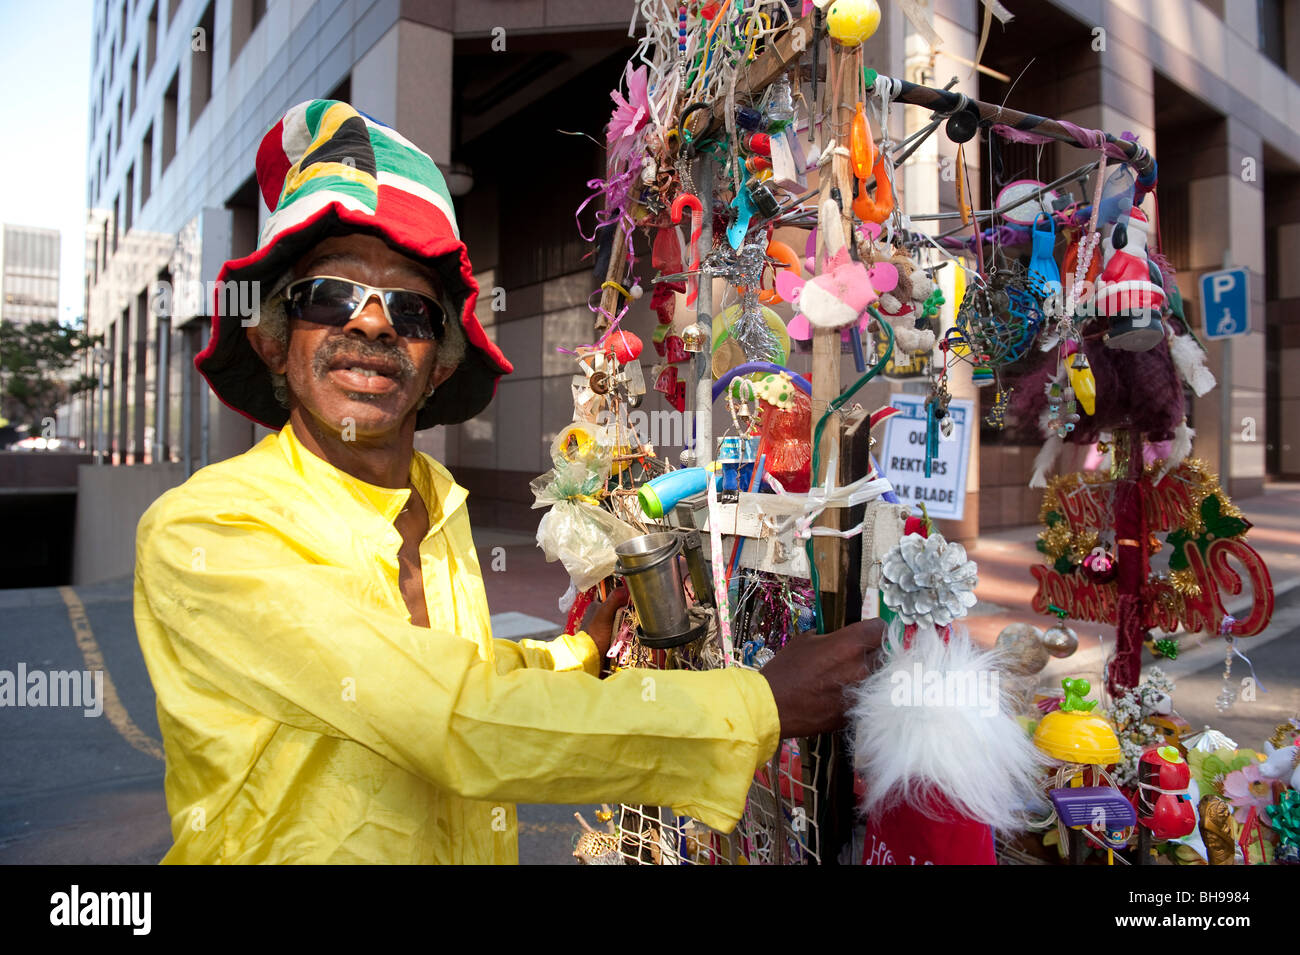 Street vendor FIFA World Cup 2010 Cape Town South Africa - Stock Image